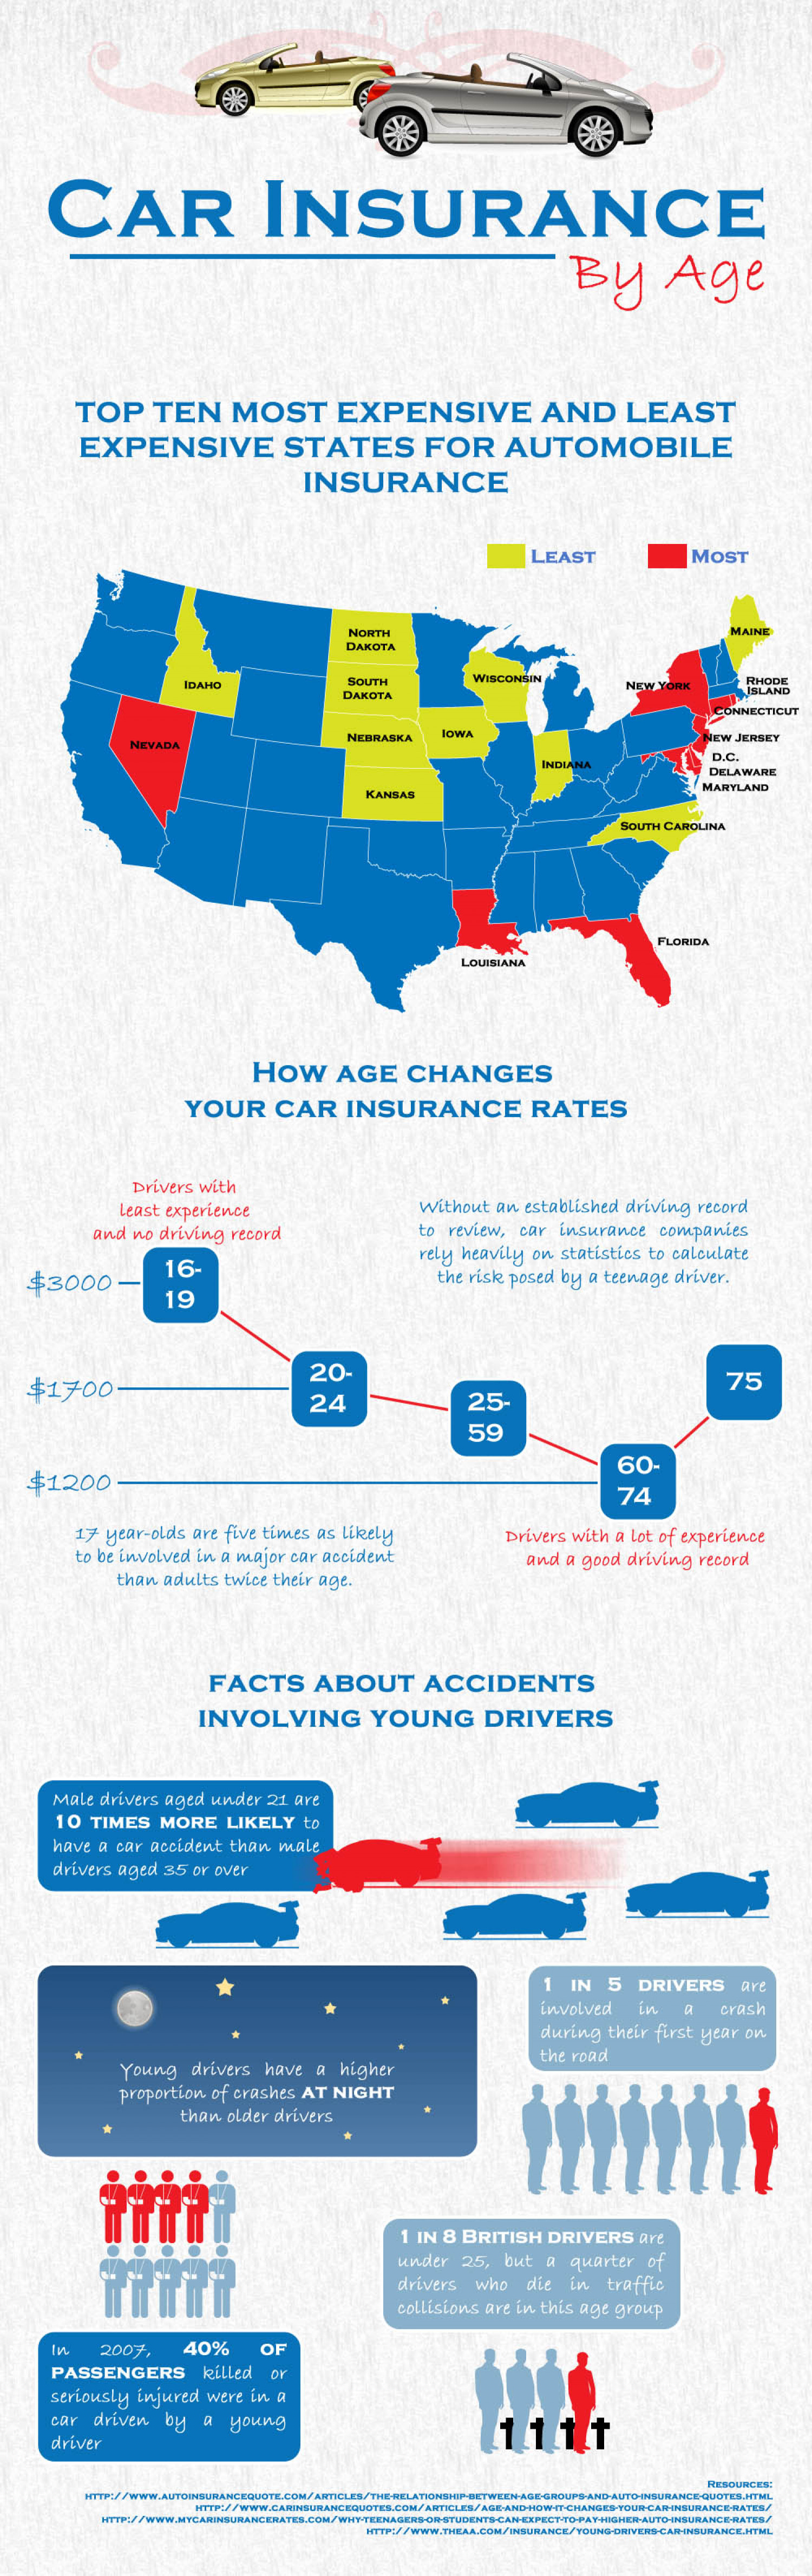 car insurance by age visual ly